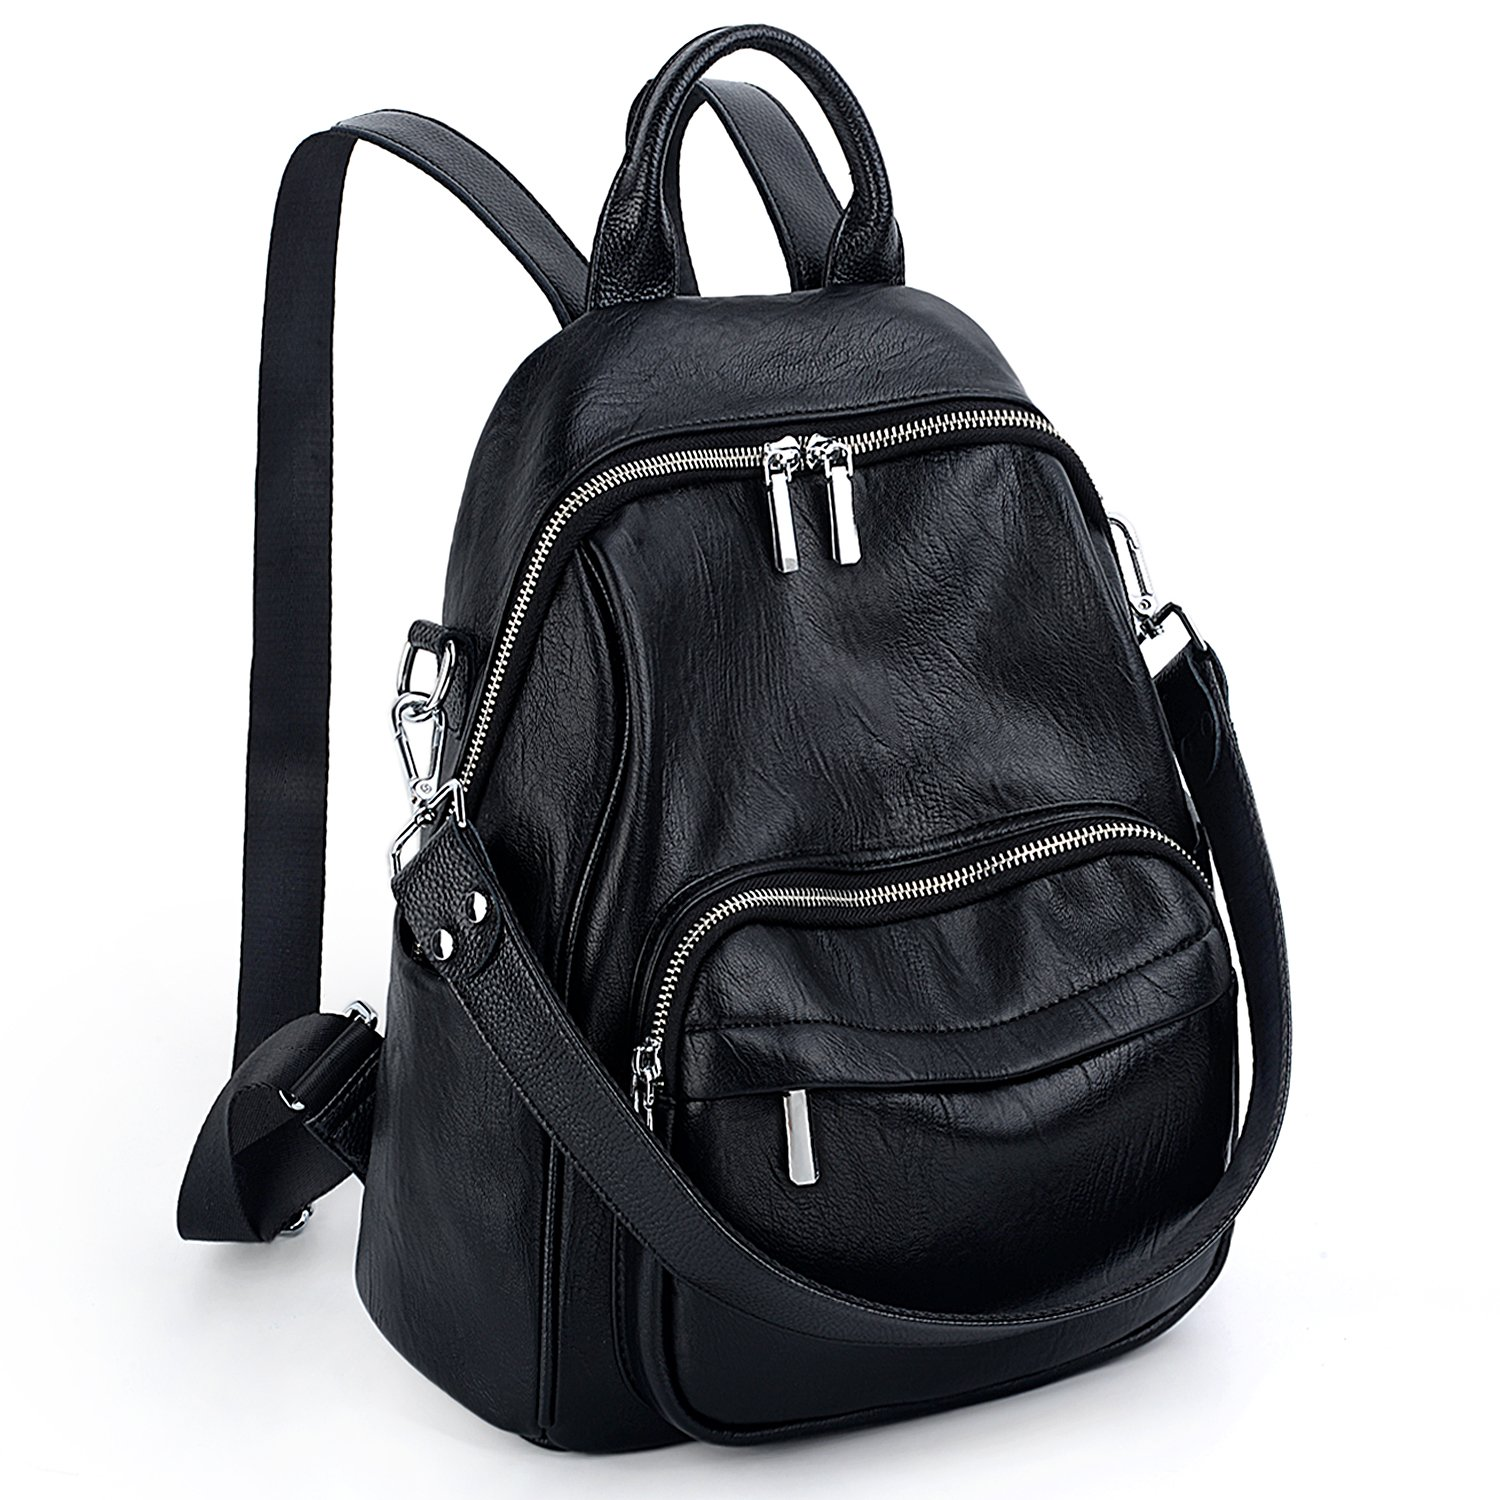 UTO Women Backpack Real Leather Handle Straps Convertible Ladies Rucksack Shoulder Bag Black